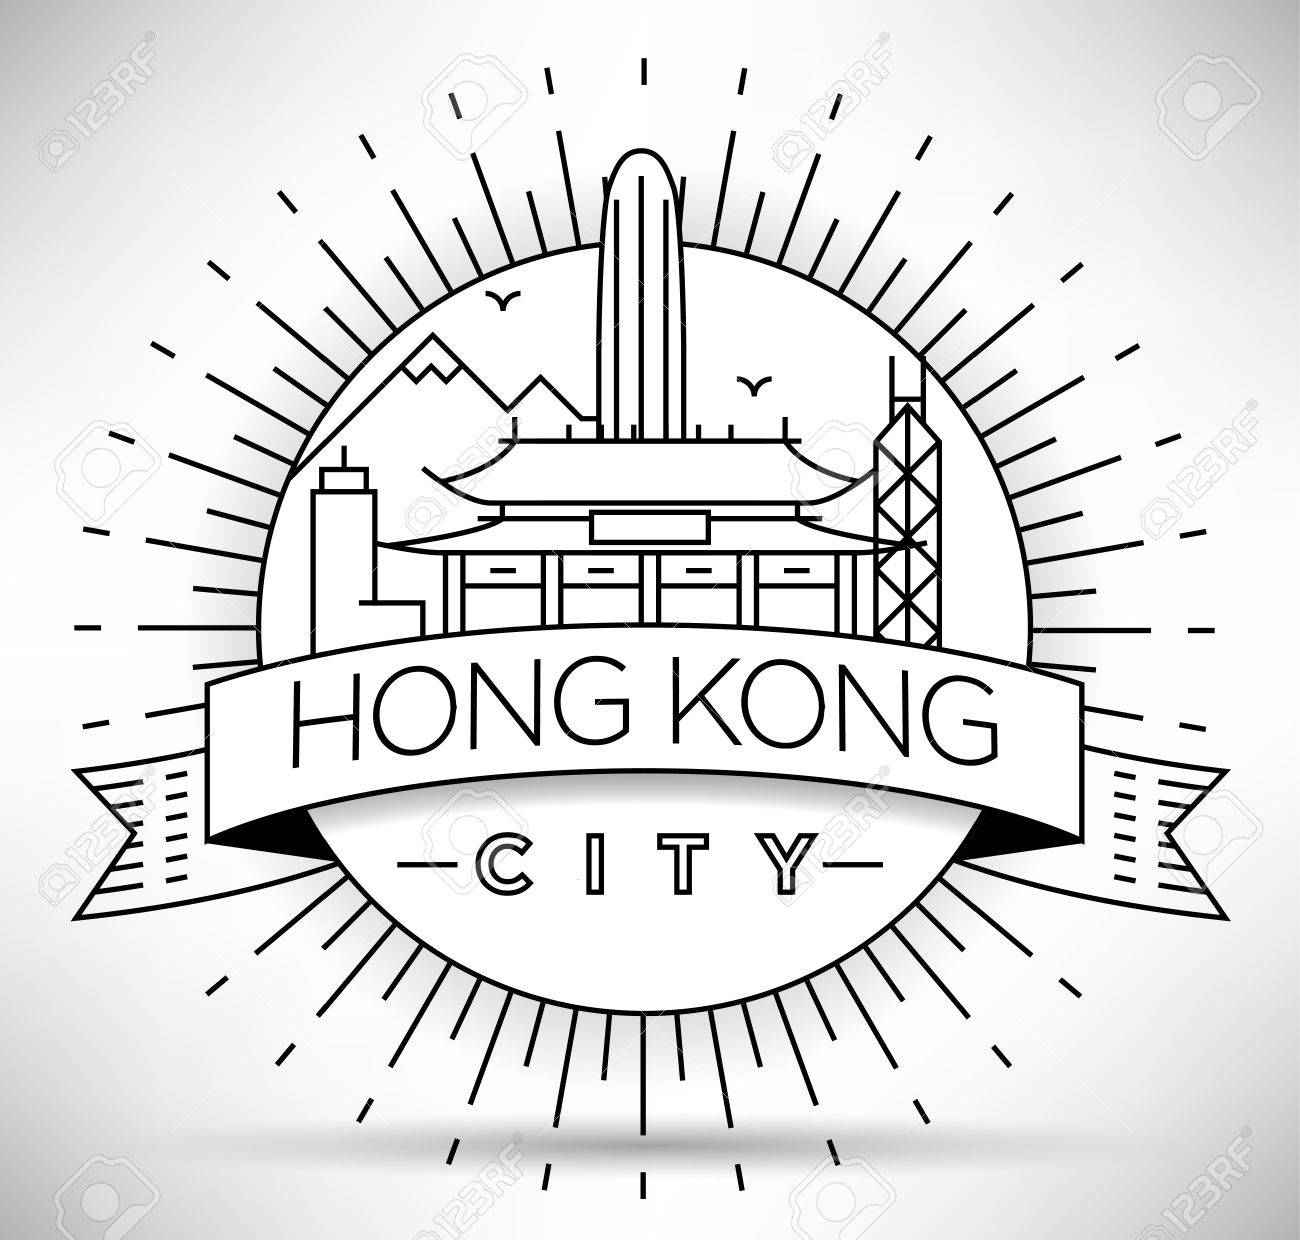 Minimal Vector Hong Kong City Linear Skyline With Typographic Design Stock